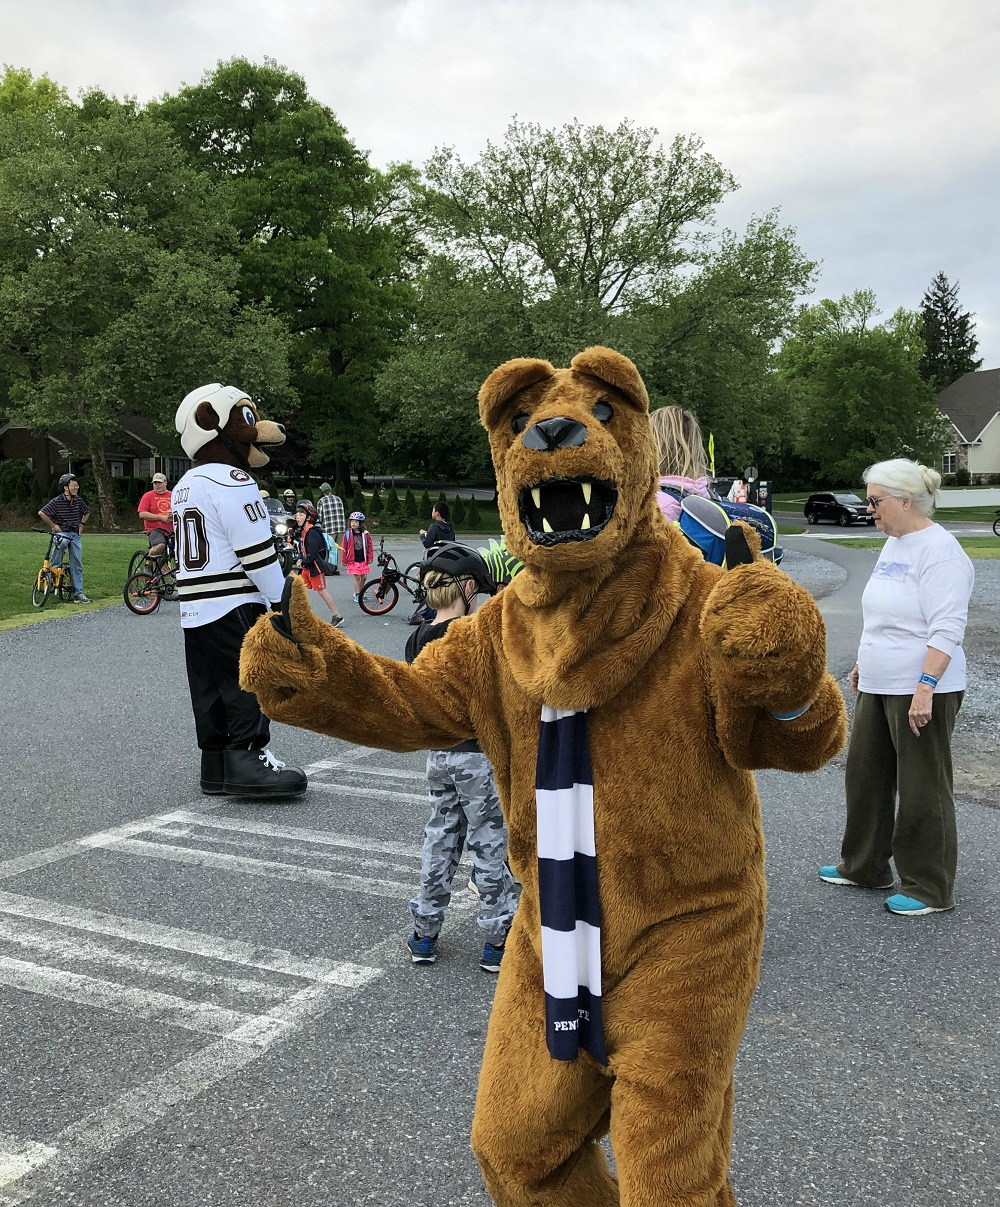 Someone in a costume dressed as the Penn State Nittany Lion gives a thumbs up sign. Behind him people on bicycles gather in a parking lot. A man dressed as the Hershey Bear's mascot, Cocoa, stands among them.